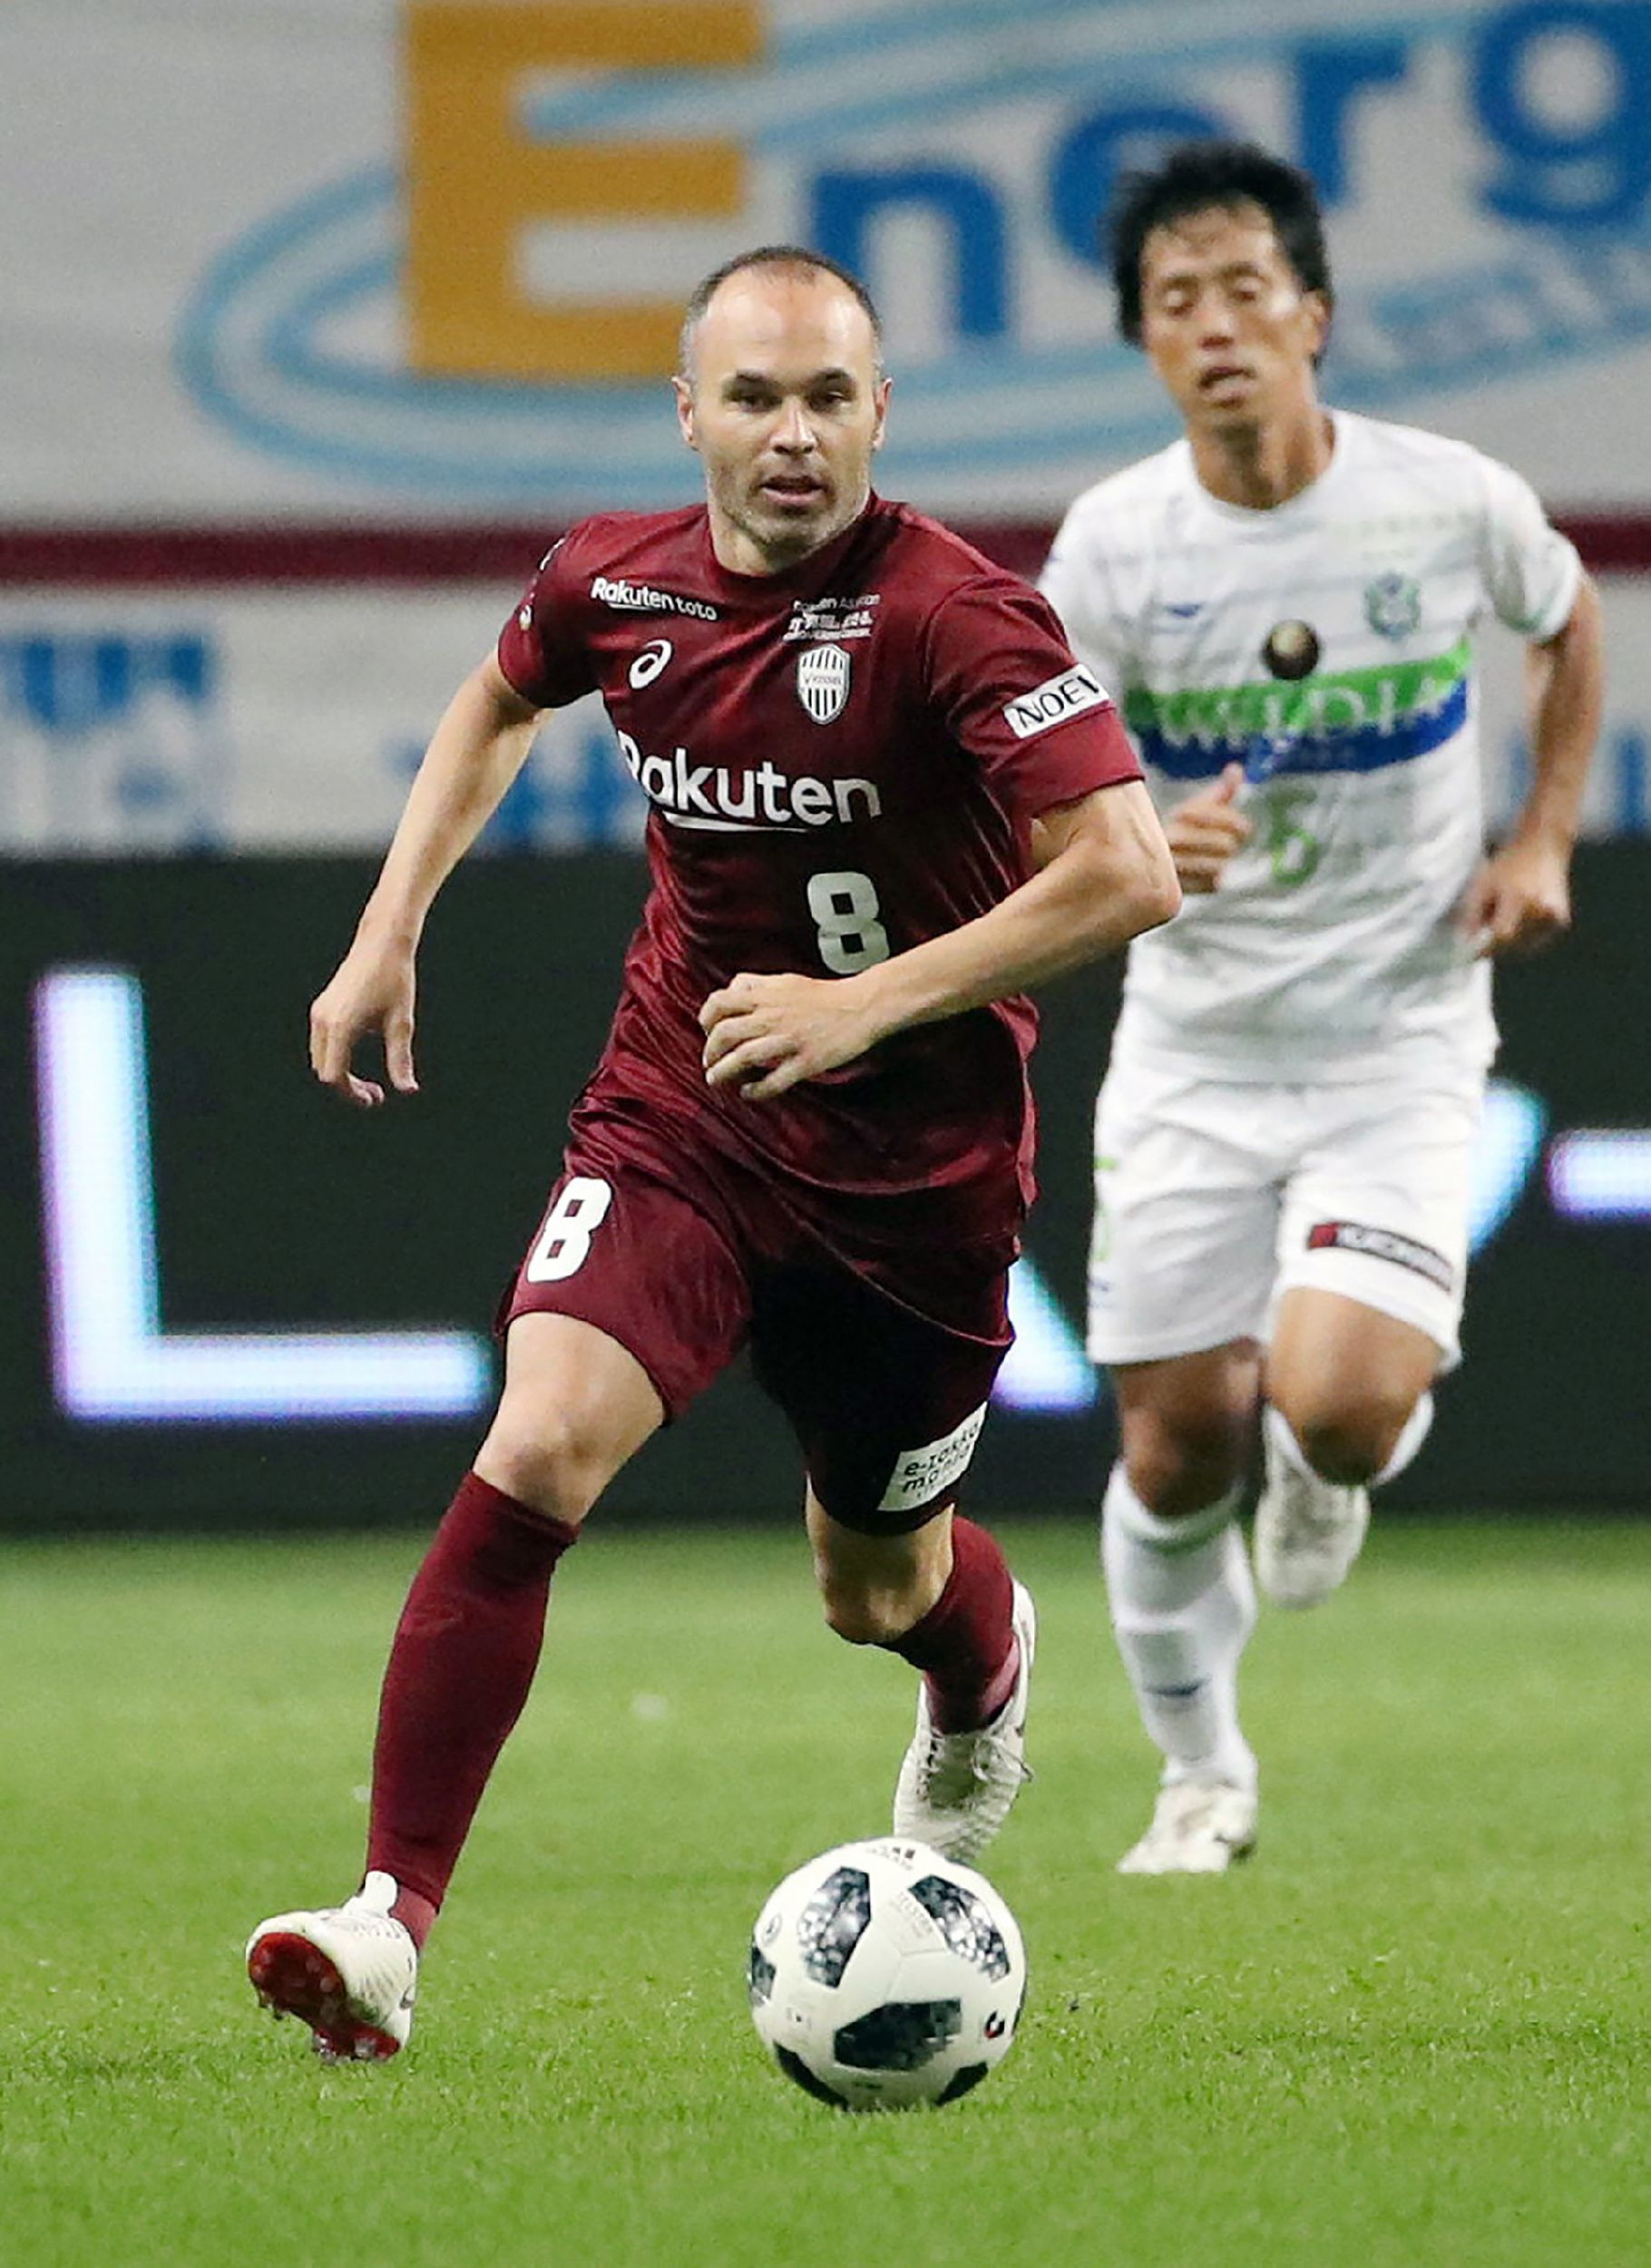 J-League club team Vissel Kobes new signing, Spanish player <HIT>Andres</HIT><HIT>Iniesta</HIT> (L), controls the ball during a football match against Shonan Bellmare at Noevir Stadium in Kobe, Hyogo prefecture on July 22, 2018. / AFP PHOTO / JIJI PRESS / JIJI PRESS / Japan OUT